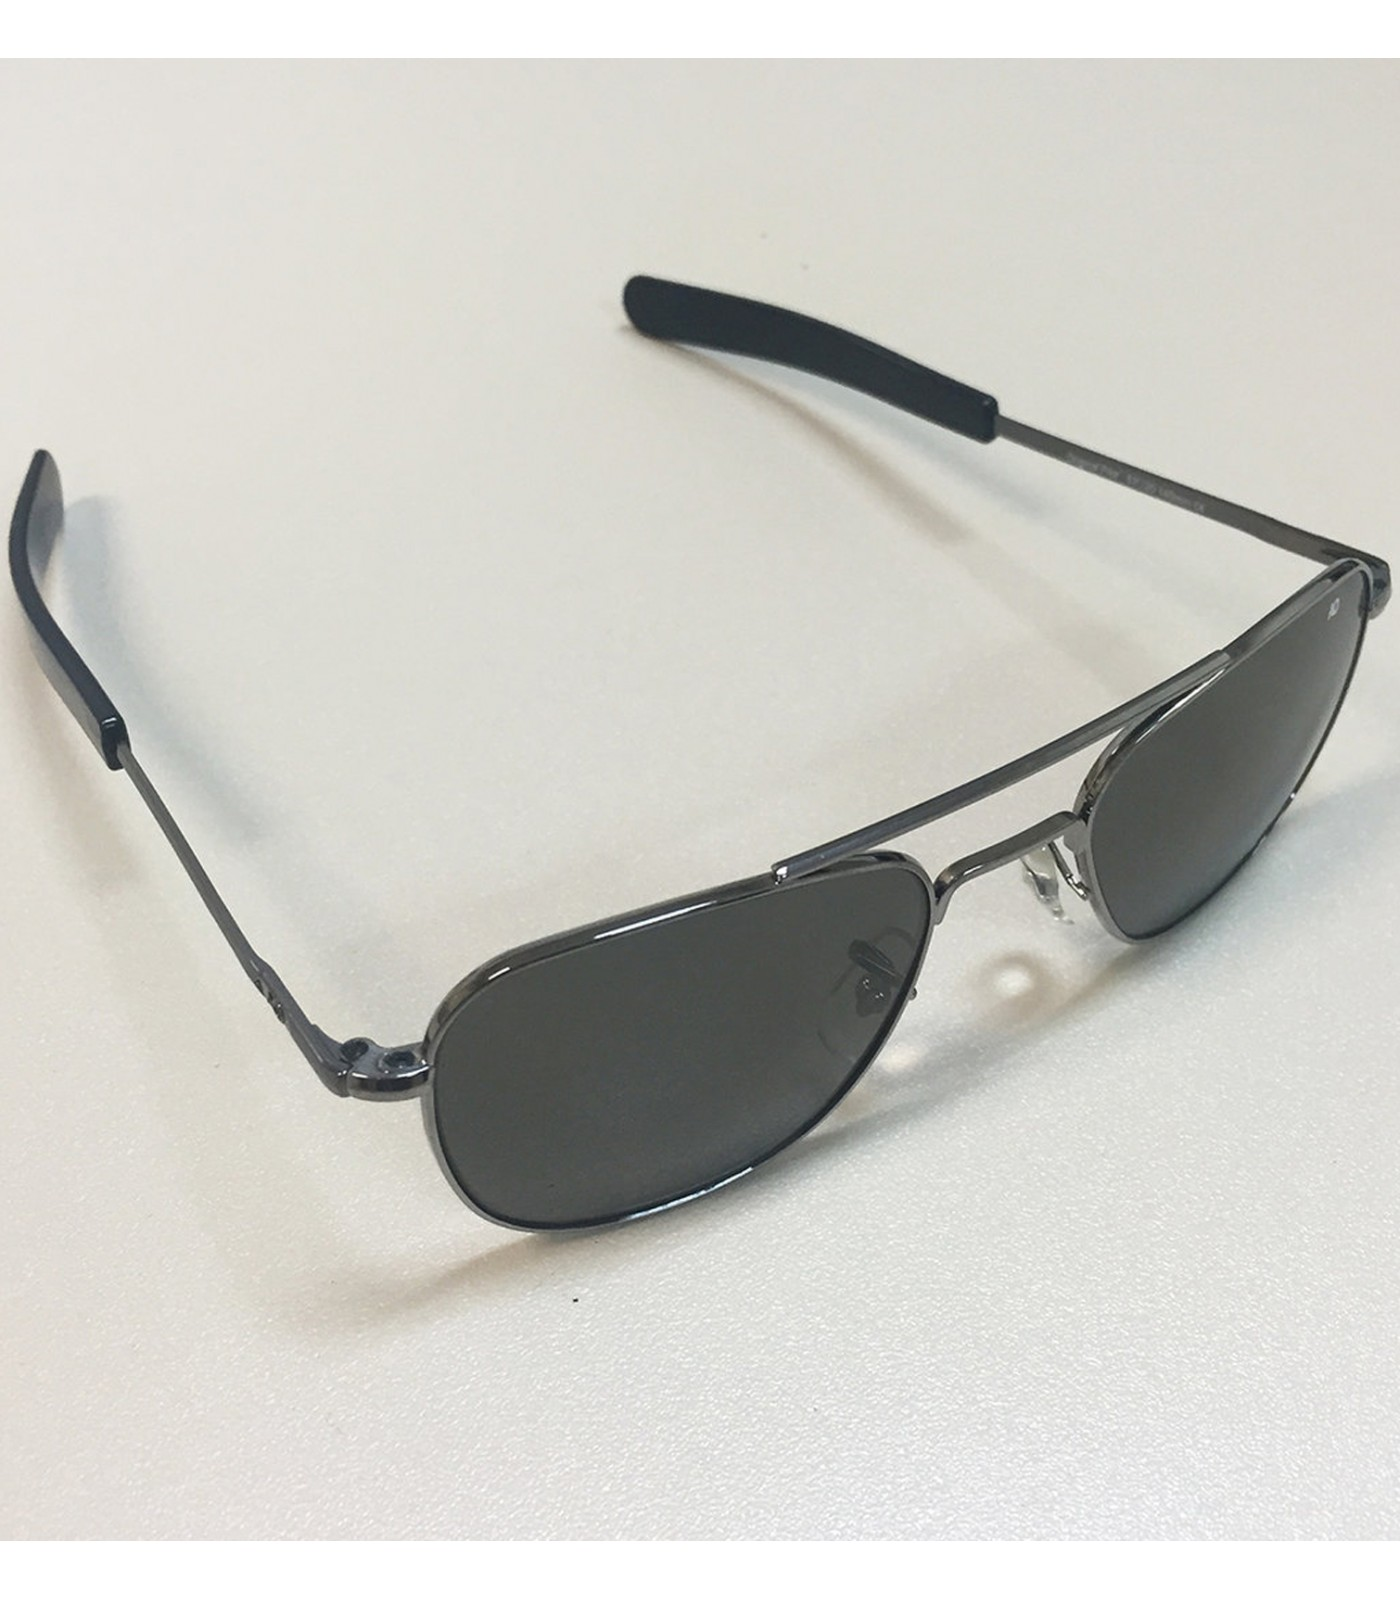 American Optical Original Pilot Sunglasses - Squadronsrus 005665a0e36